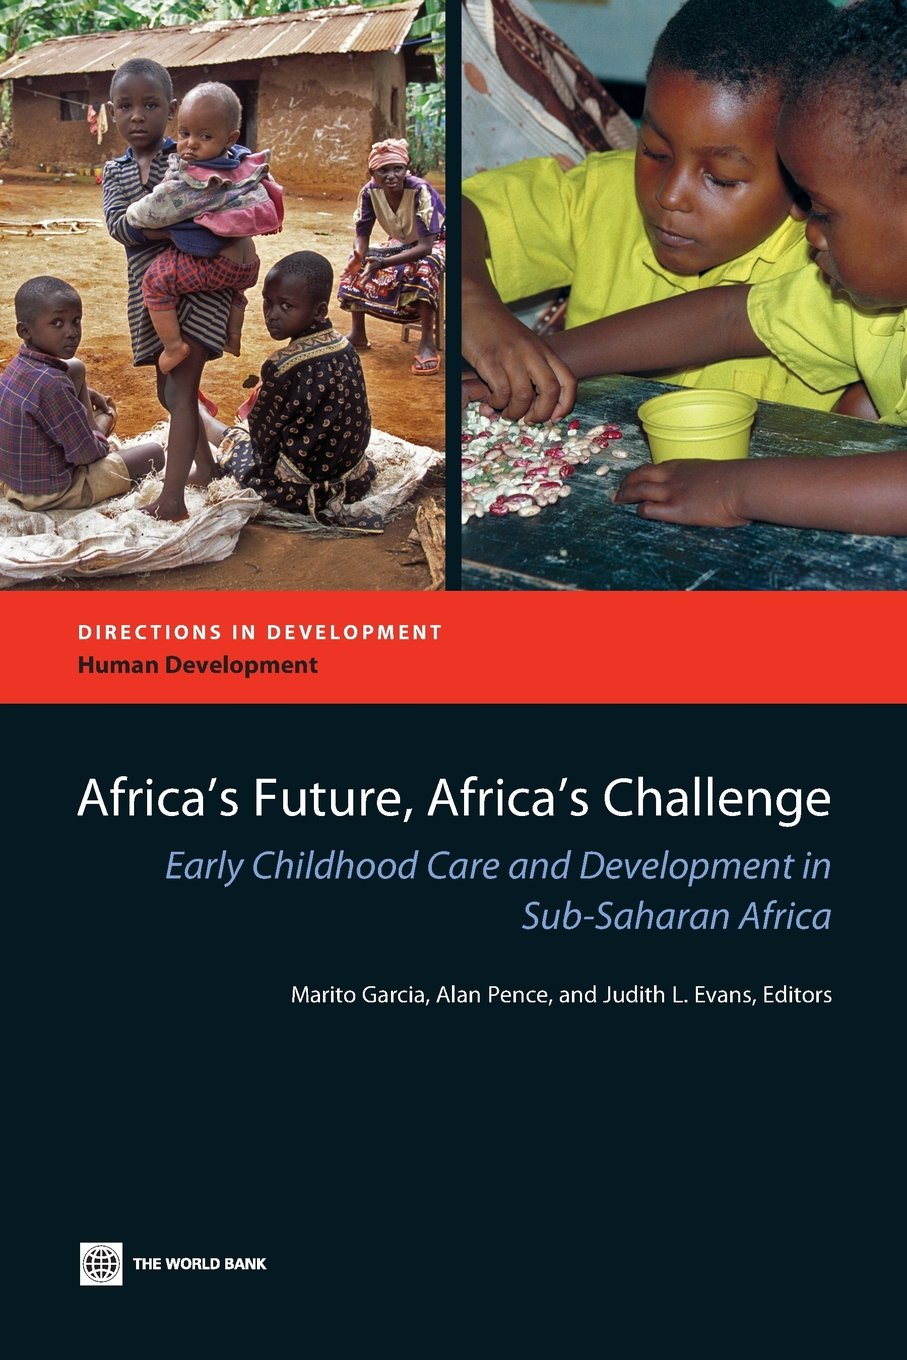 Download Africa's Future, Africa's Challenge: Early Childhood Care and Development in Sub-Saharan Africa (Directions in Development) ebook